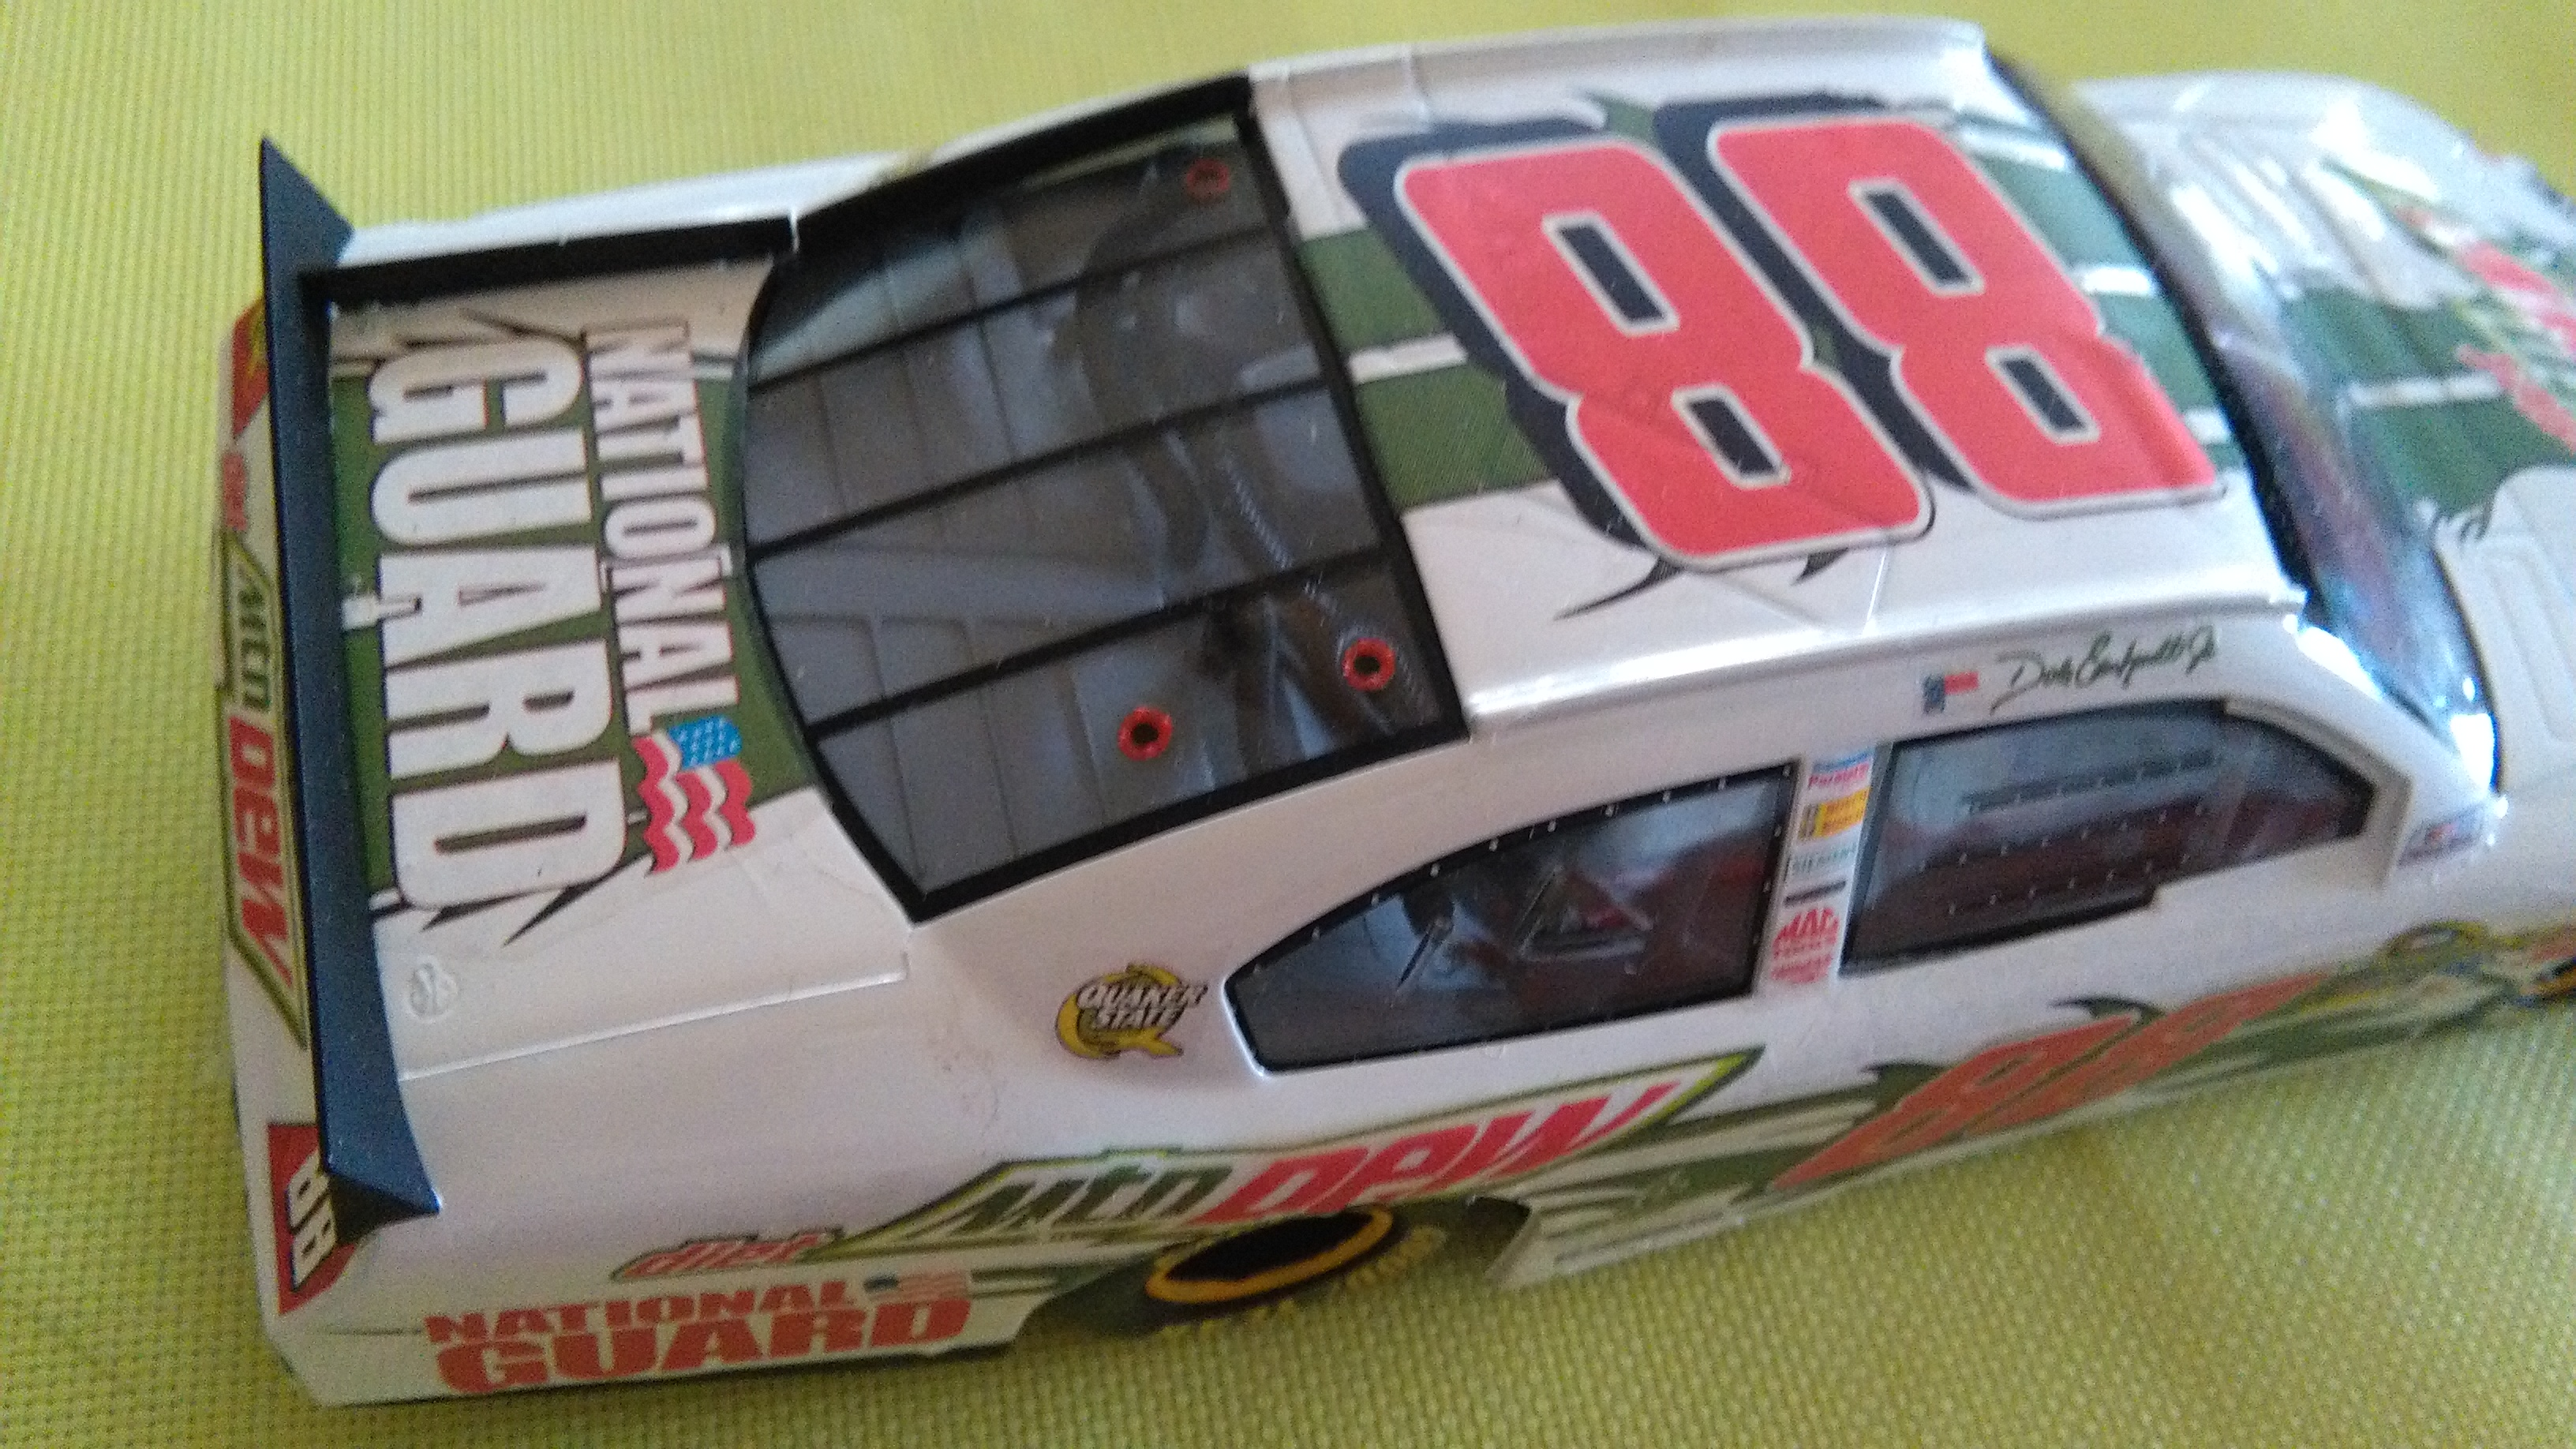 Chevy Impala 2010 #88 Earnhardt jr Mountain dew diet 378658IMG20160320150435